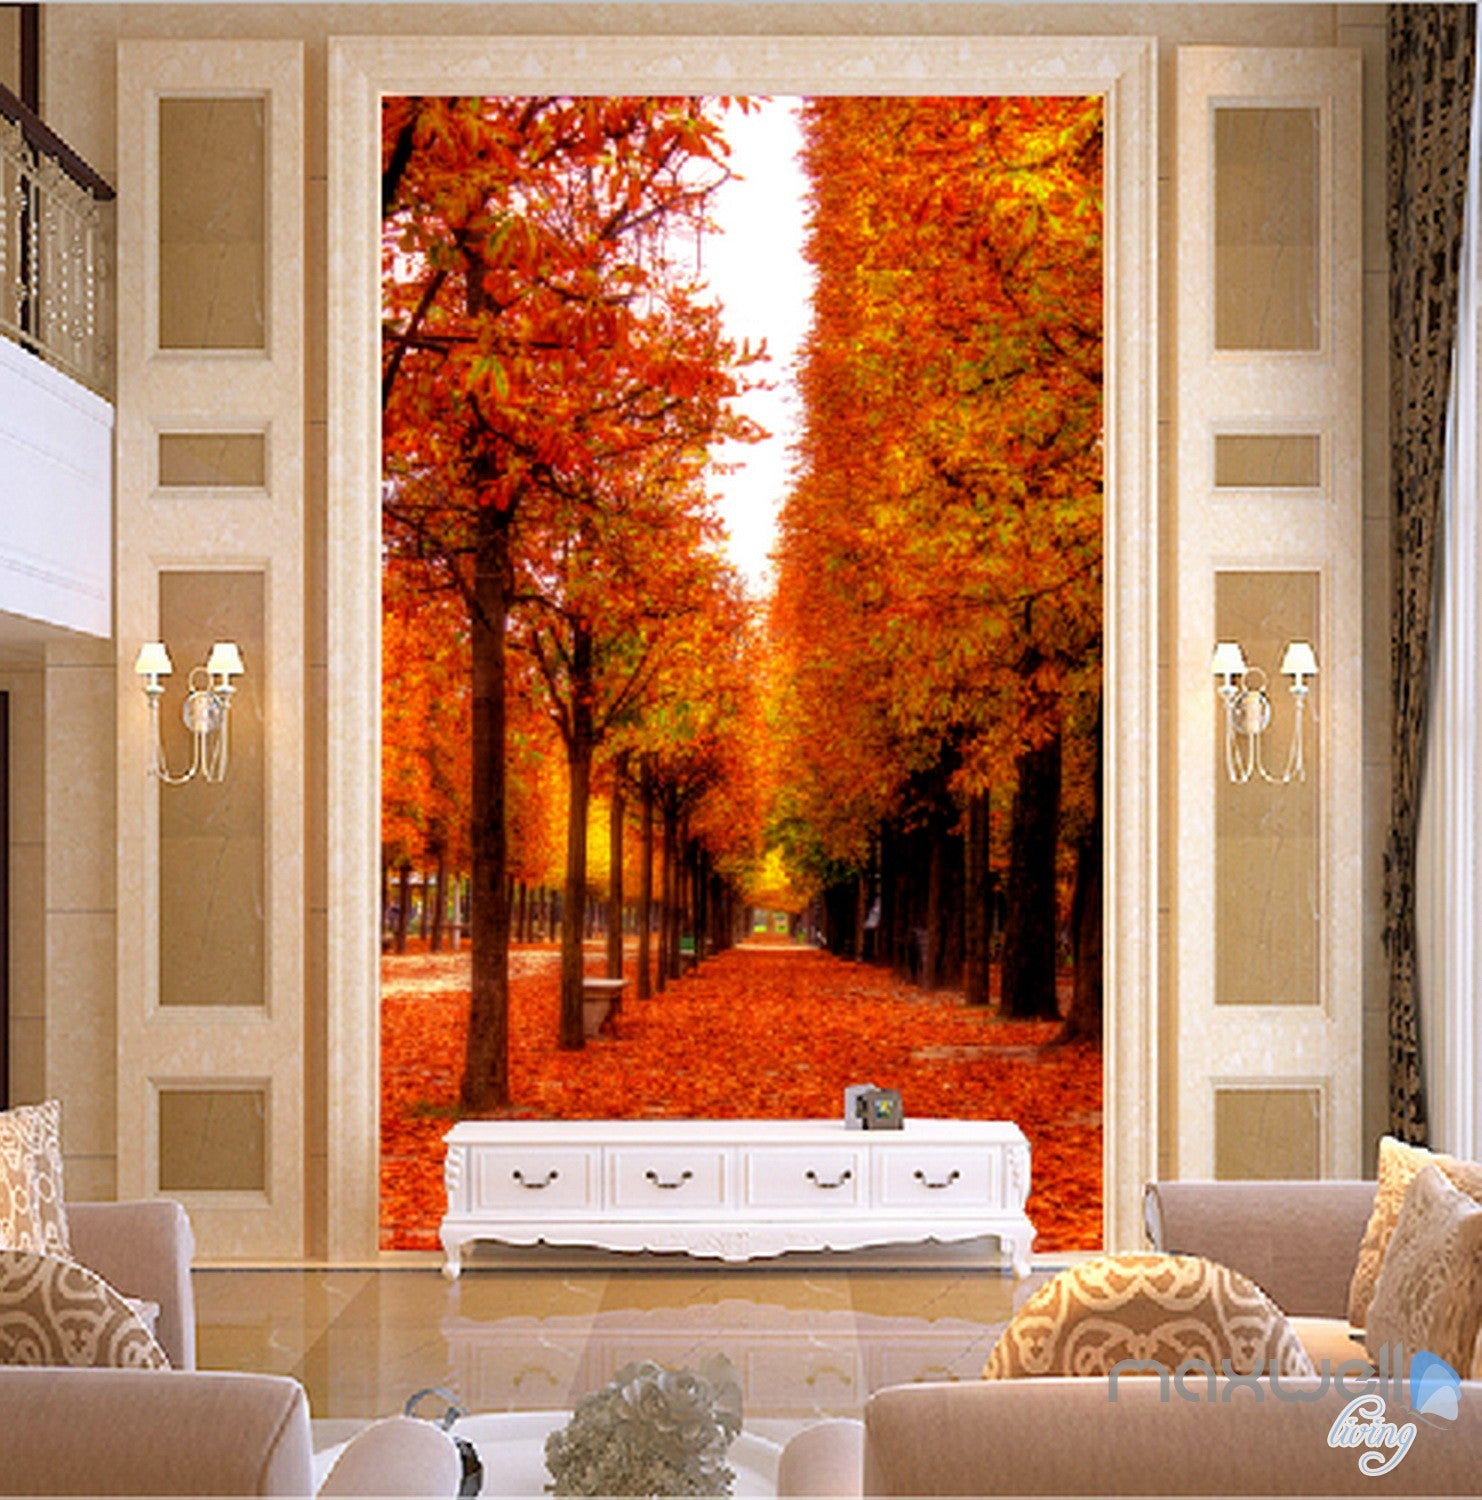 3D Leaves Fall Tree Corridor Entrance Wall Mural Decals Art Print Wallpaper  068